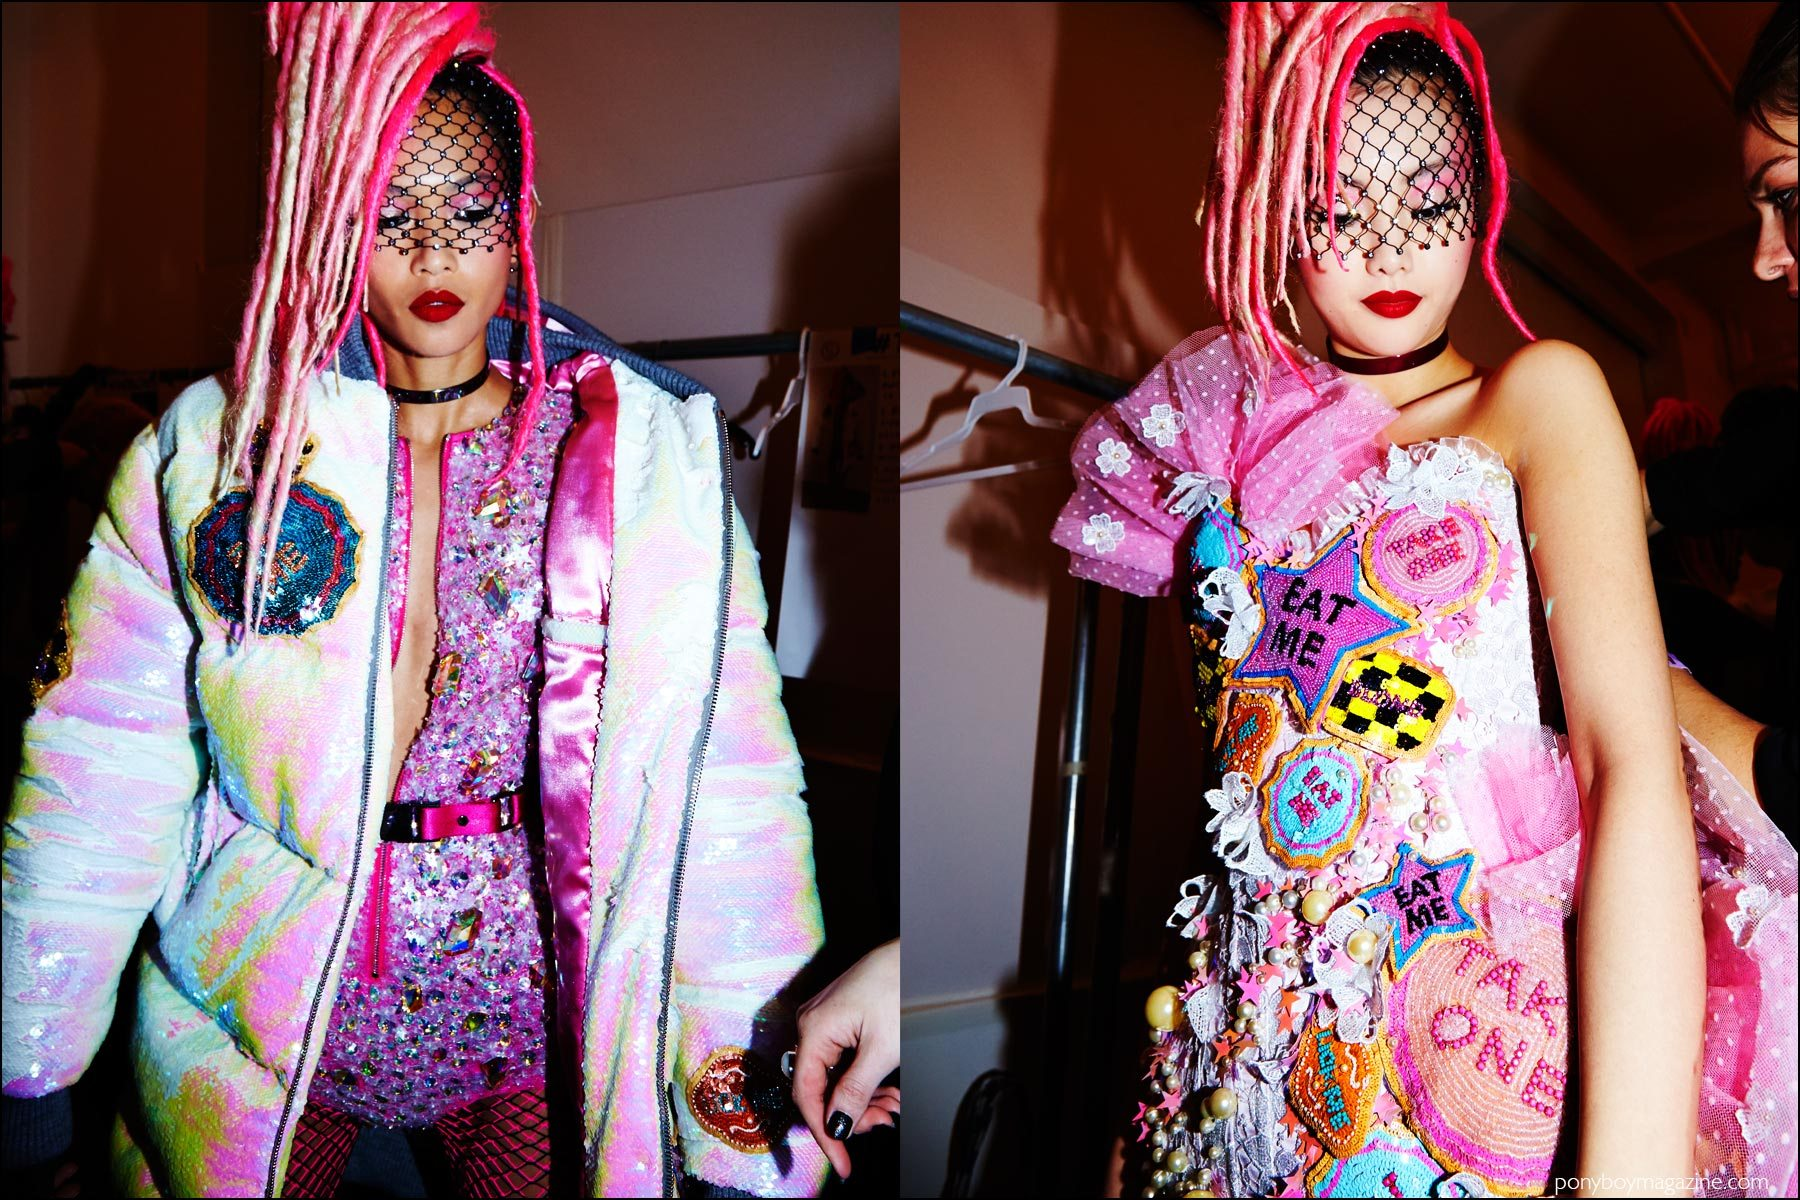 Models photographed in colorful creations, backstage at The Blonds F/W16 womenswear show. Photography by Alexander Thompson for Ponyboy magazine NY.